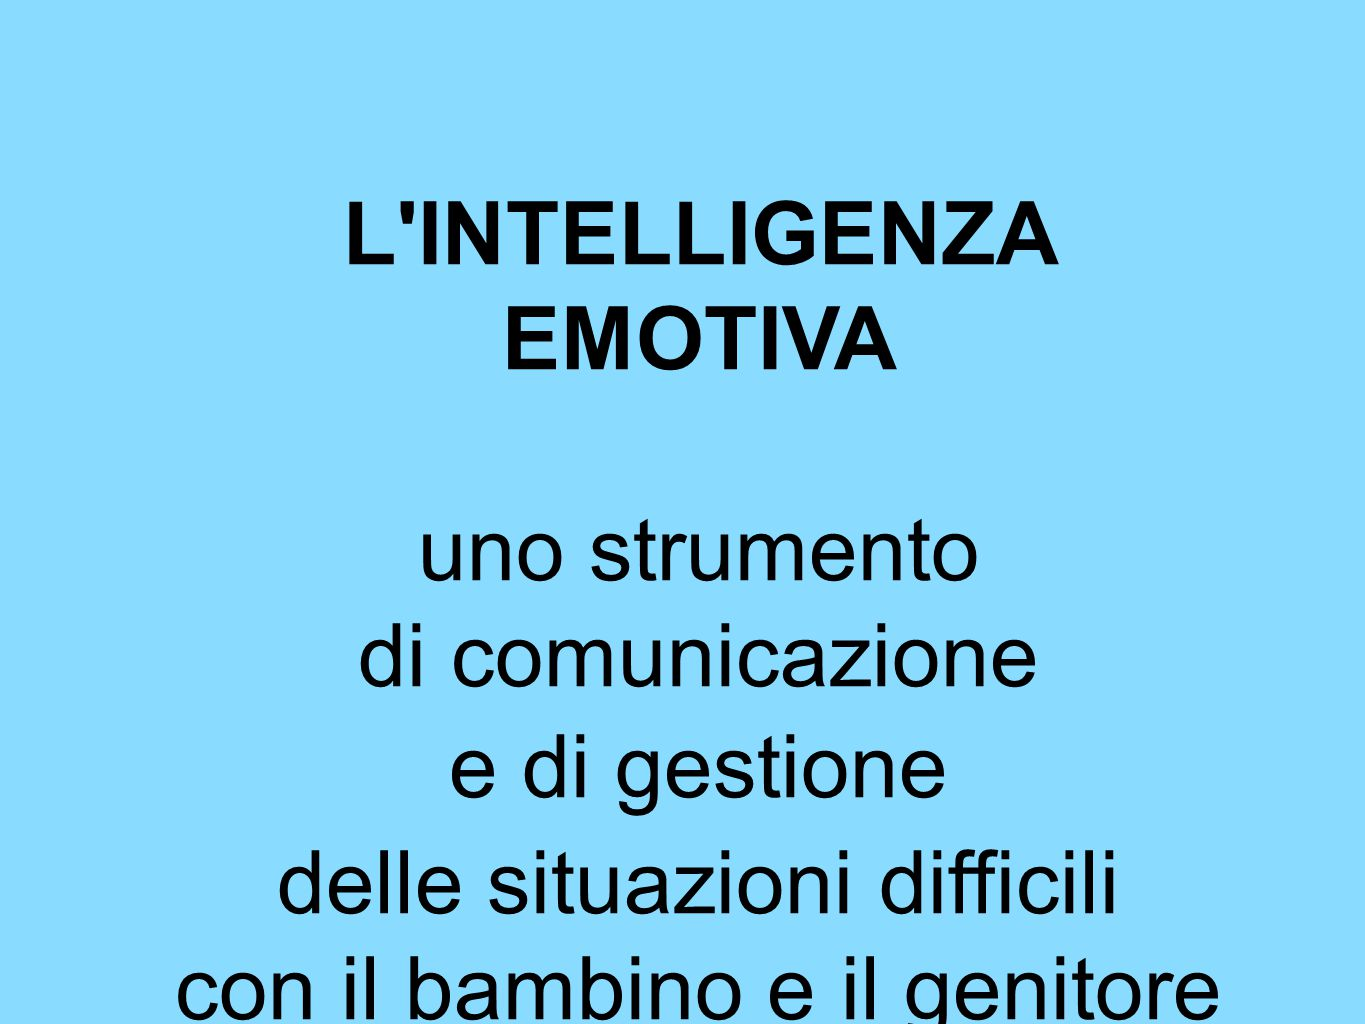 L INTELLIGENZA EMOTIVA